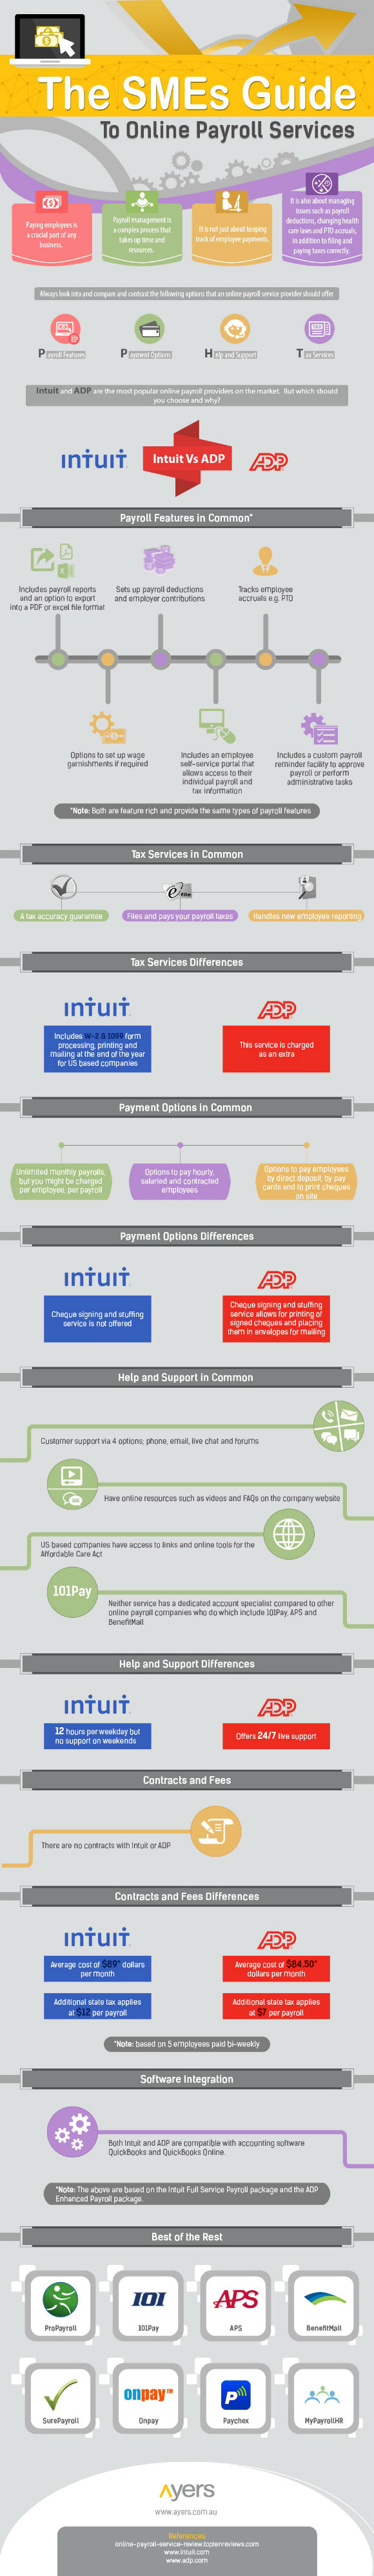 SMEs Guide To Online Payroll Providers [Infographic]